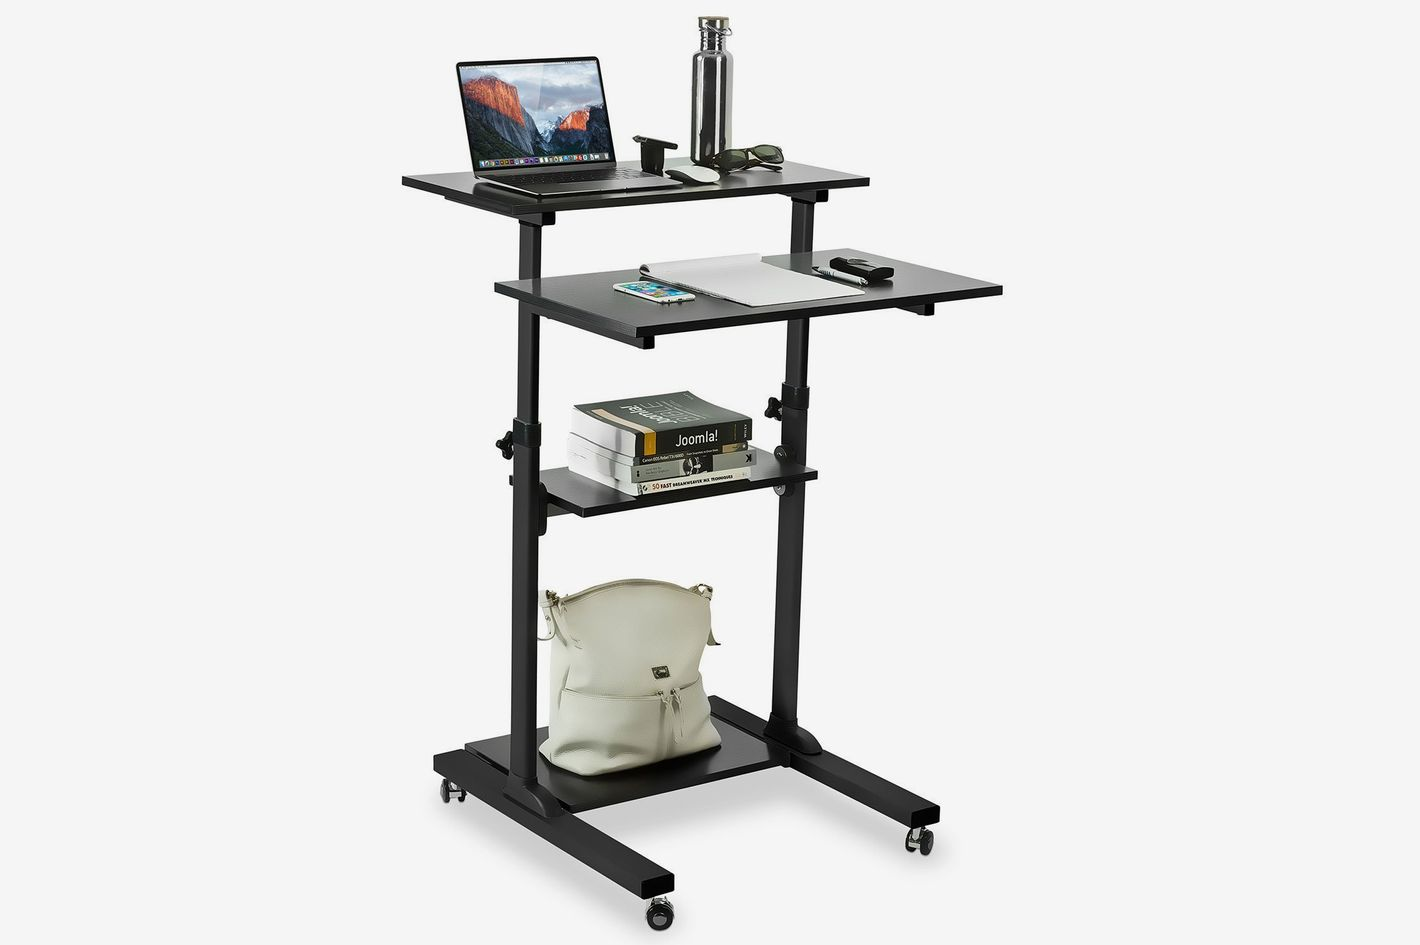 amazon adjustable desk best standing desks height cubicles promocontent for corner varidesk jerusalem showimage black cube reviewed post